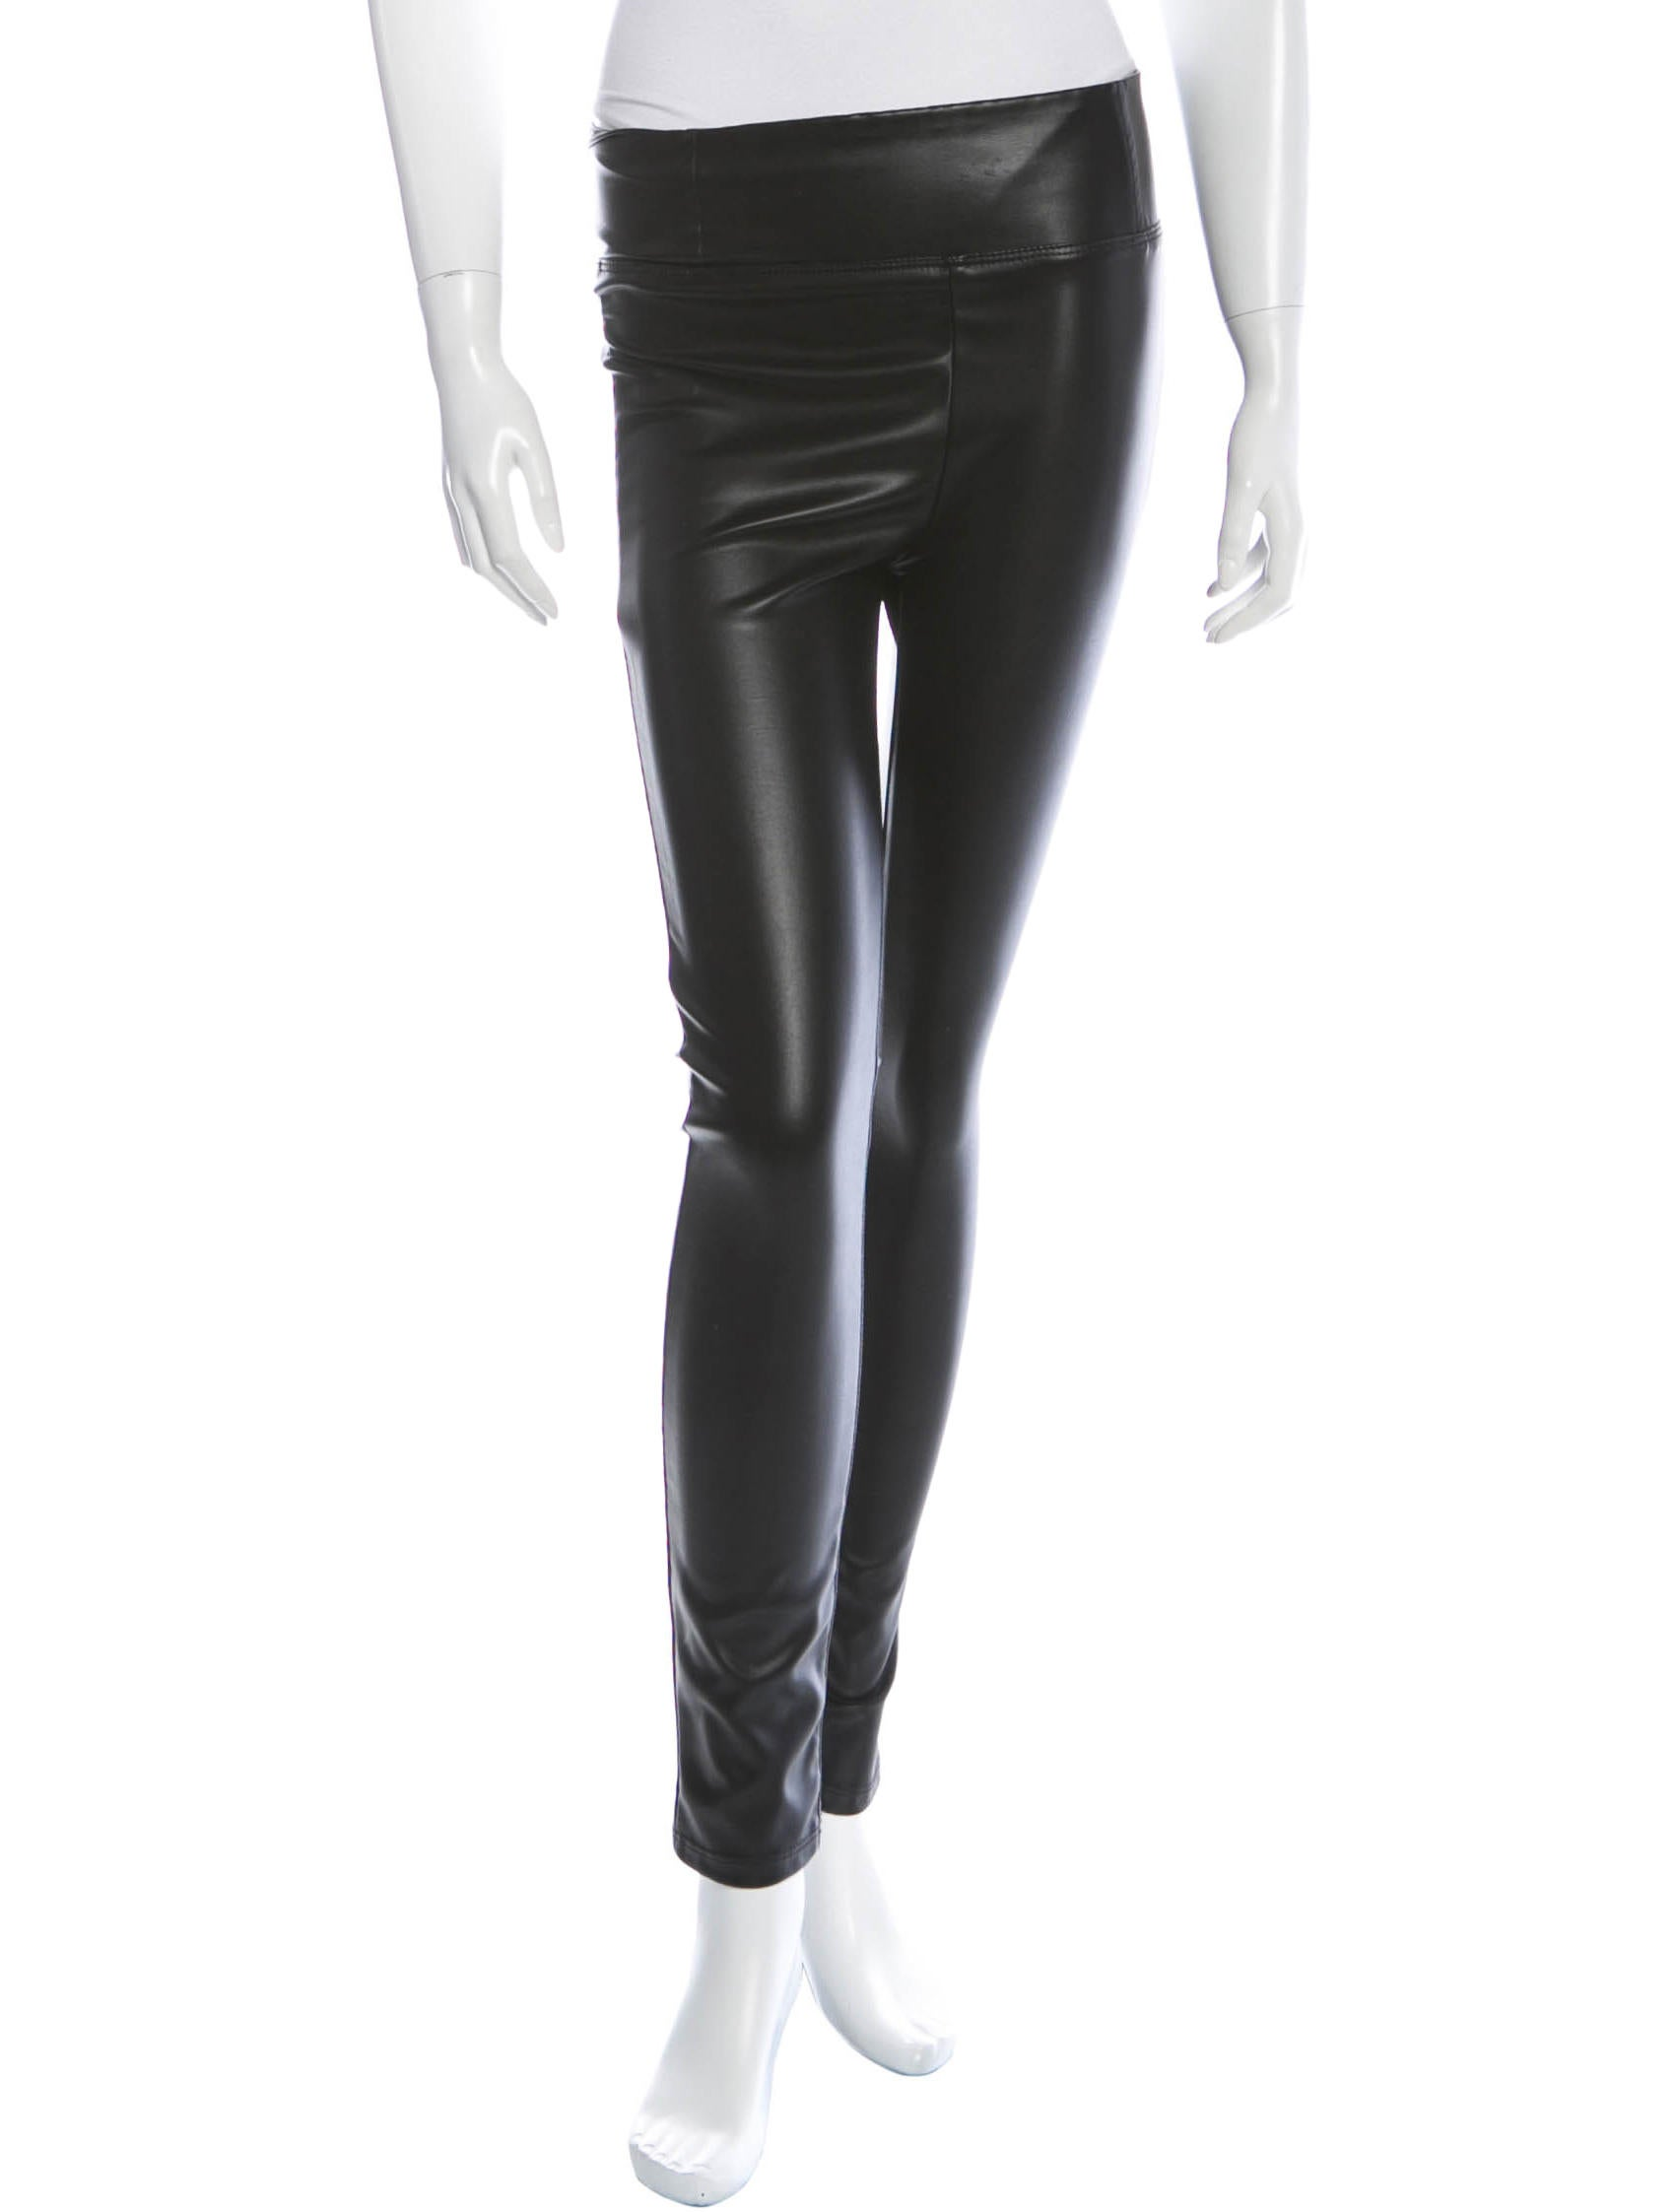 Cool Anthony Vaccarello Slim Vinyl Pants In Black In Black  Lyst